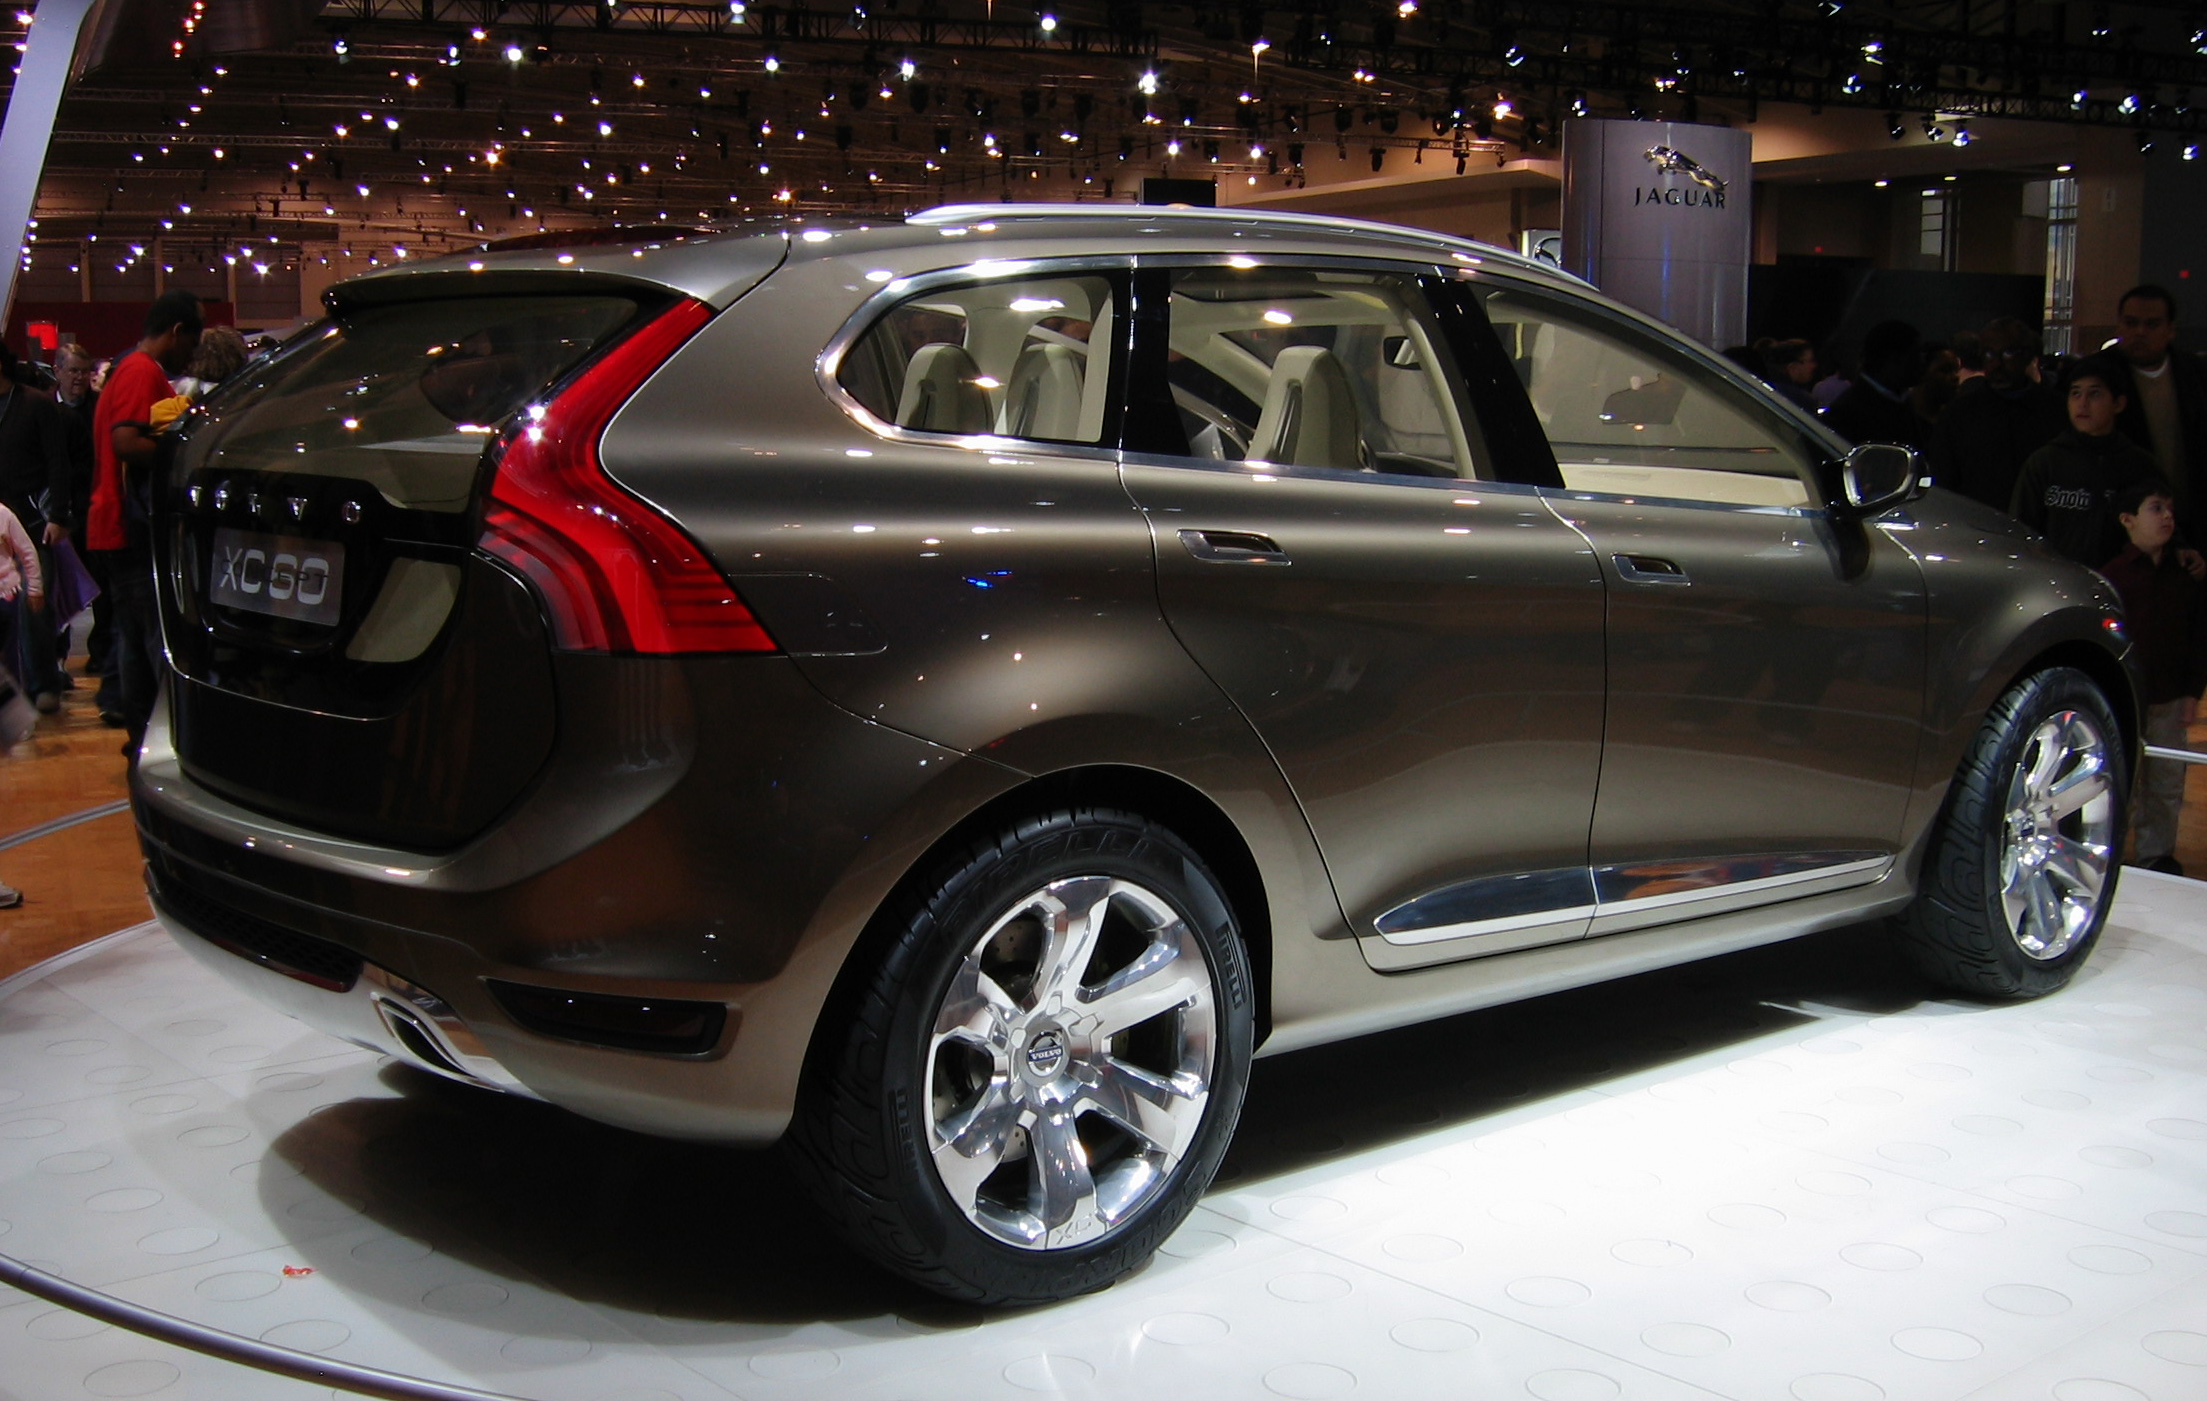 volvo dealership Auto Car Wallpapers hd